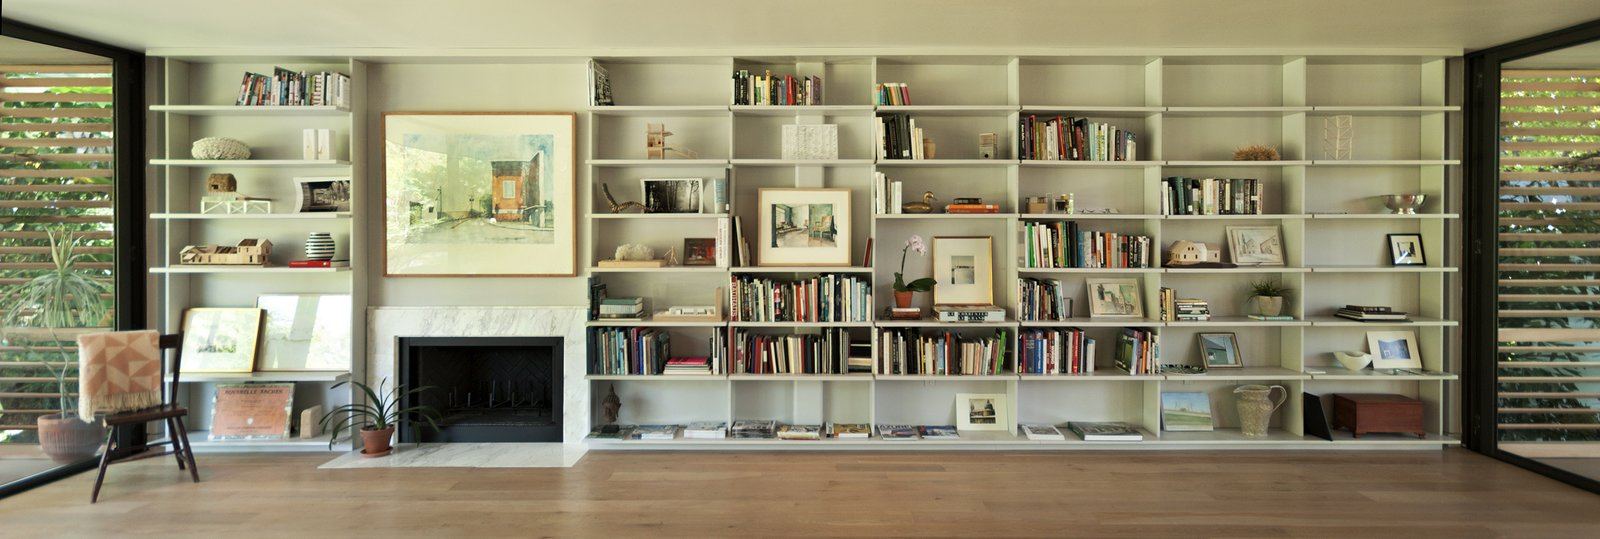 """In the living room, the Brillharts created a """"unified, simple and clean design"""" that incorporated a bookcase and fireplace along the continuous 30-foot long anchor wall. The shelves are inset several inches away from the glass walls on either side. Each individual layer cantilevers outwards to create a floating effect that mirrors the way the house itself floats above the ground.  Brillhart House by Emma Janzen"""